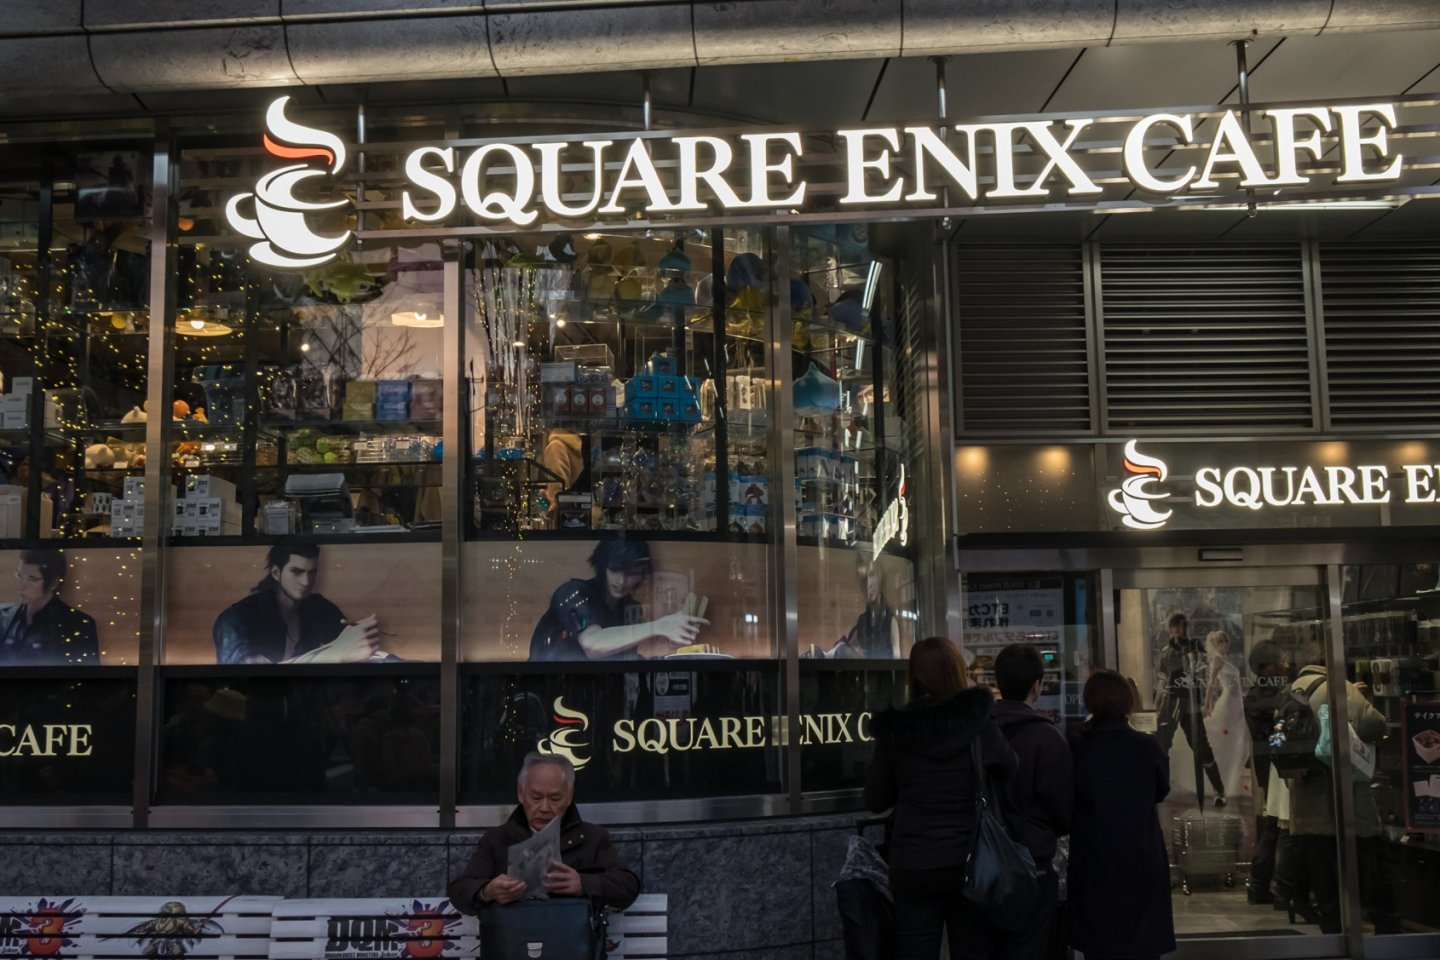 Square Enix Cafe, located on 1F of Yodobashi Akiba